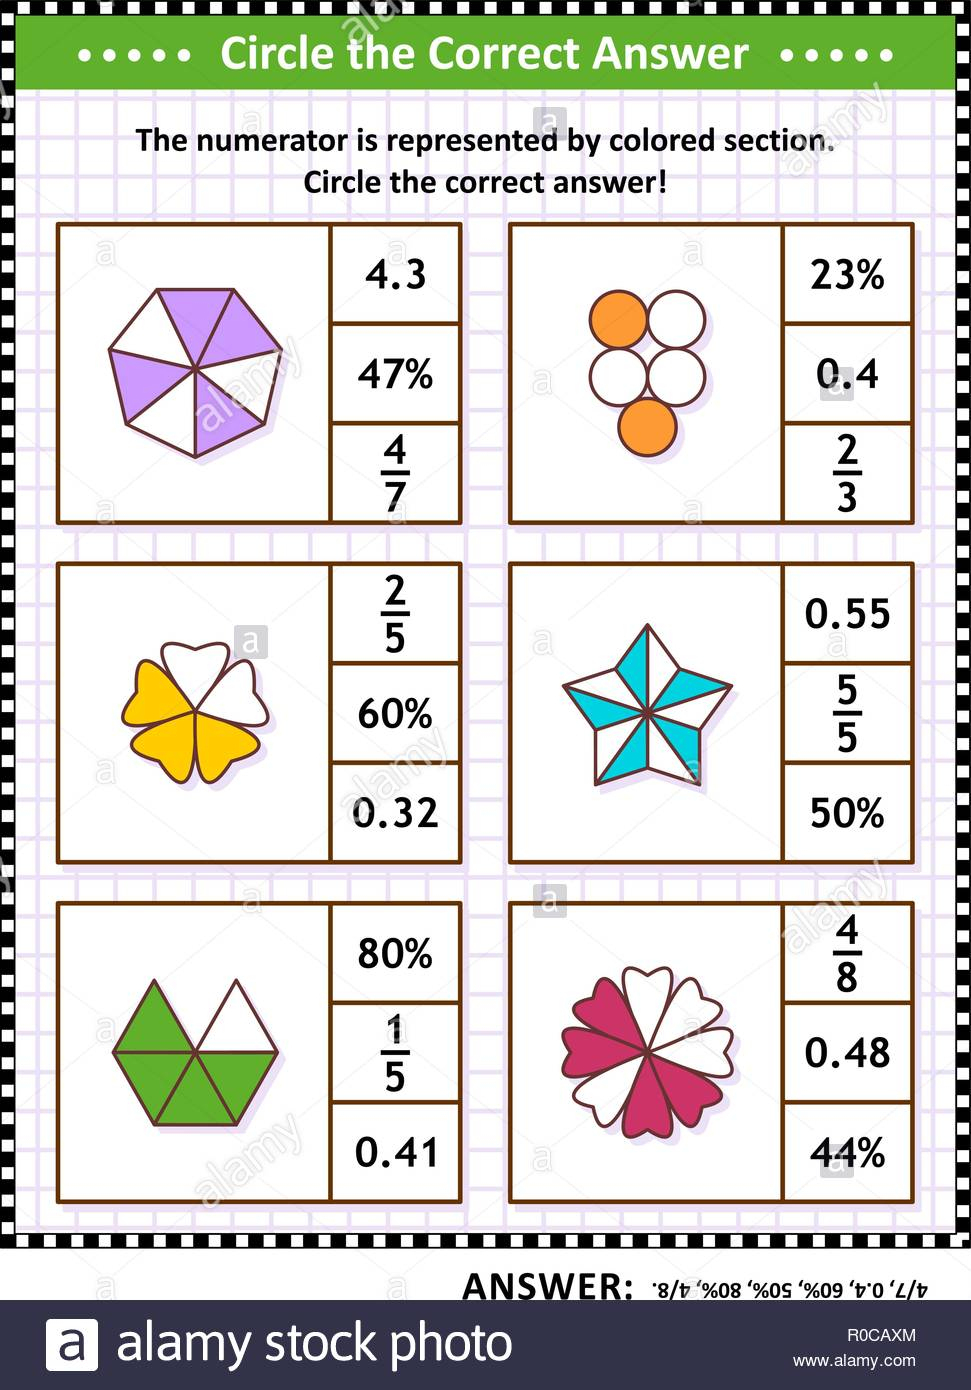 Math Skills Training Visual Puzzle Or Worksheet. Circle The Correct - Worksheet Visual Puzzle